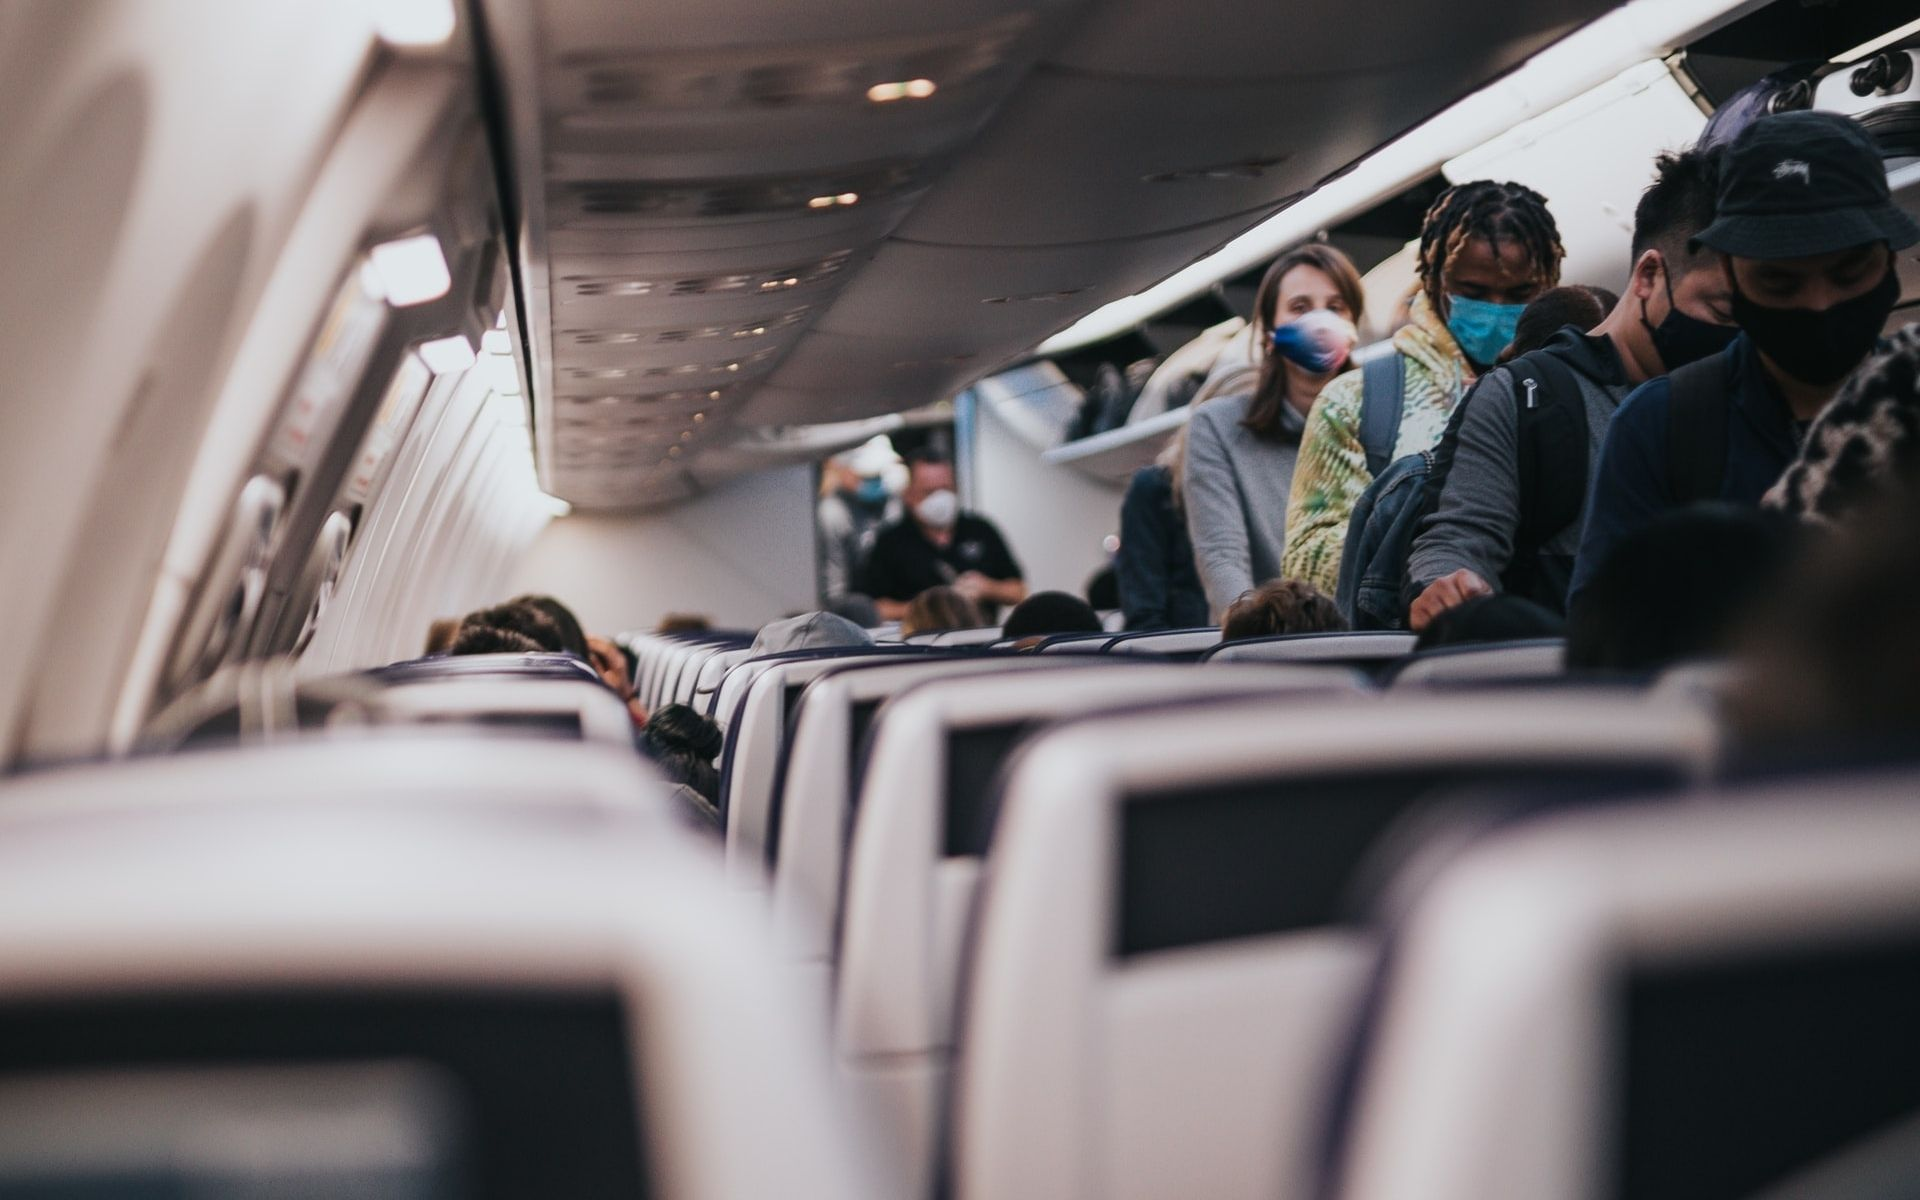 Face masks might not be mandatory on U.S. airplanes from September